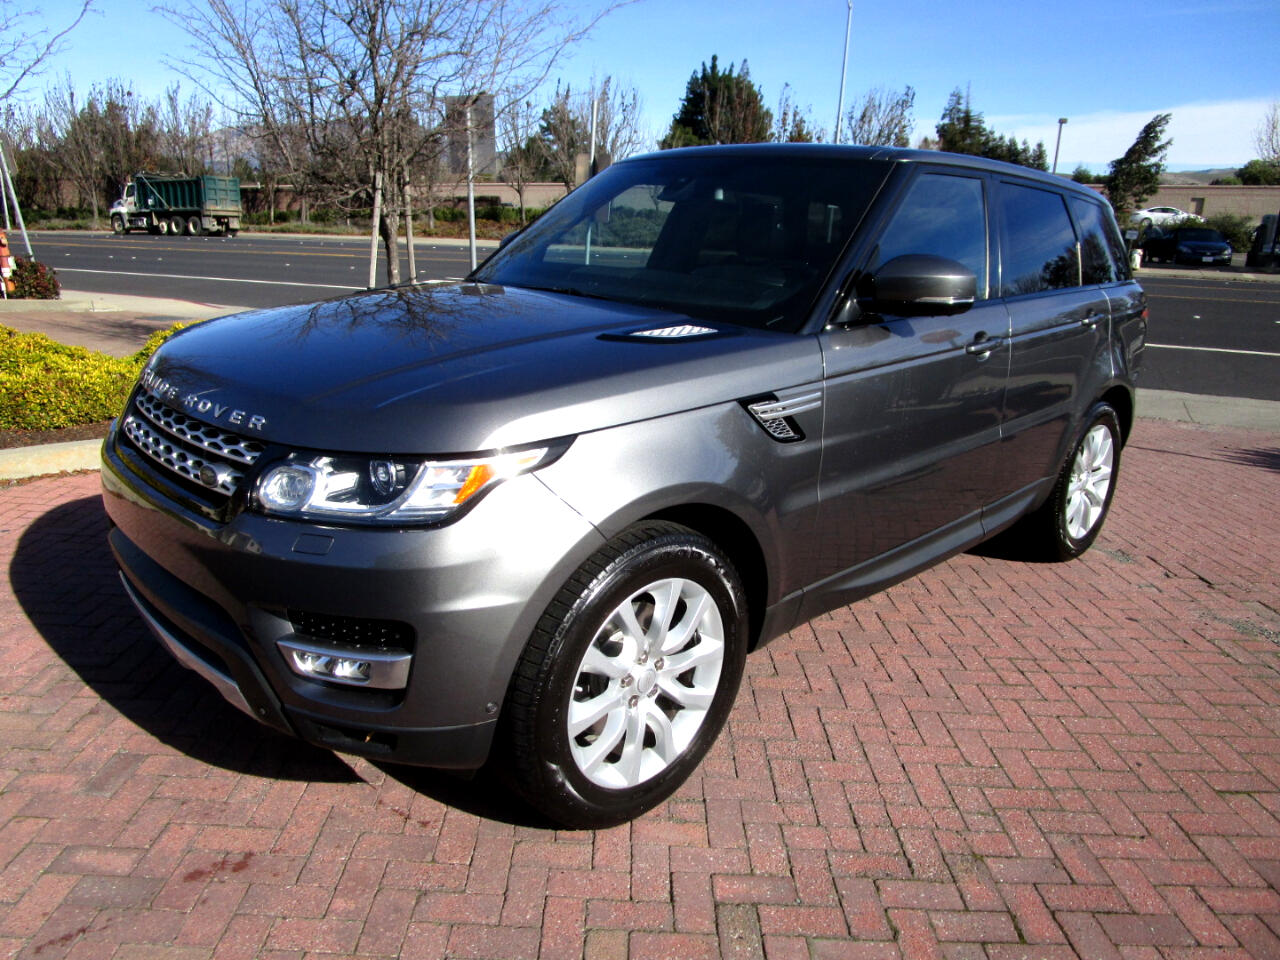 2015 Land Rover Range Rover Sport HSE*HEAT/AC SEATS*KEYLESS*PANO*REAR HEAT SEATS*